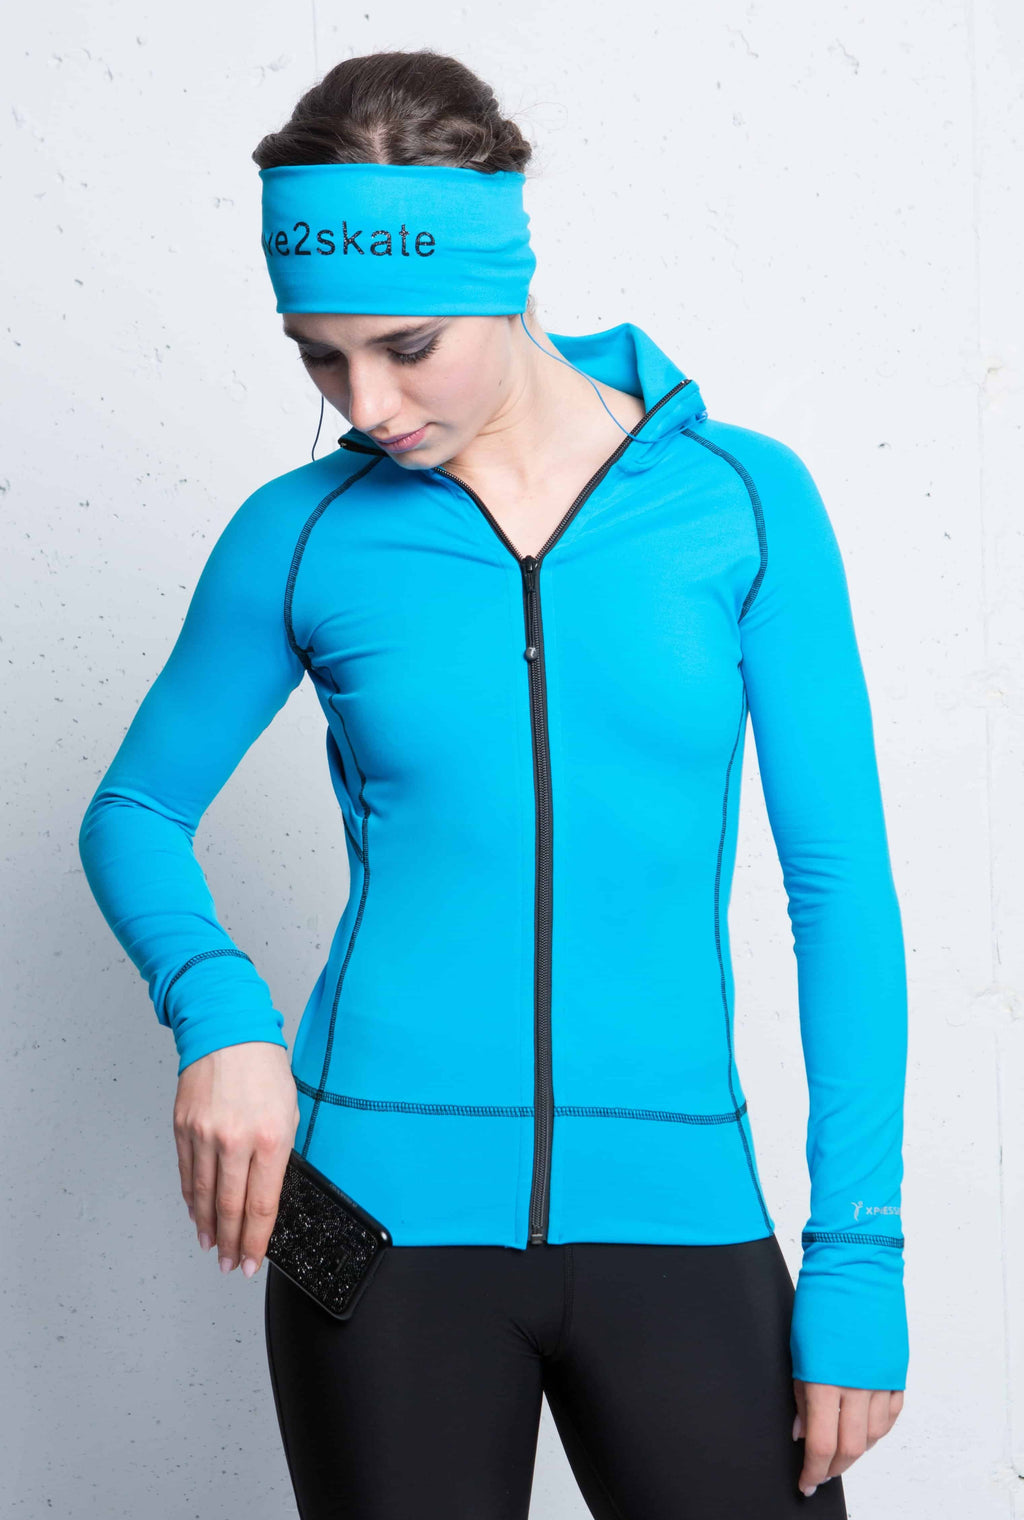 Turquoise Tech Jacket - Elite Xpression